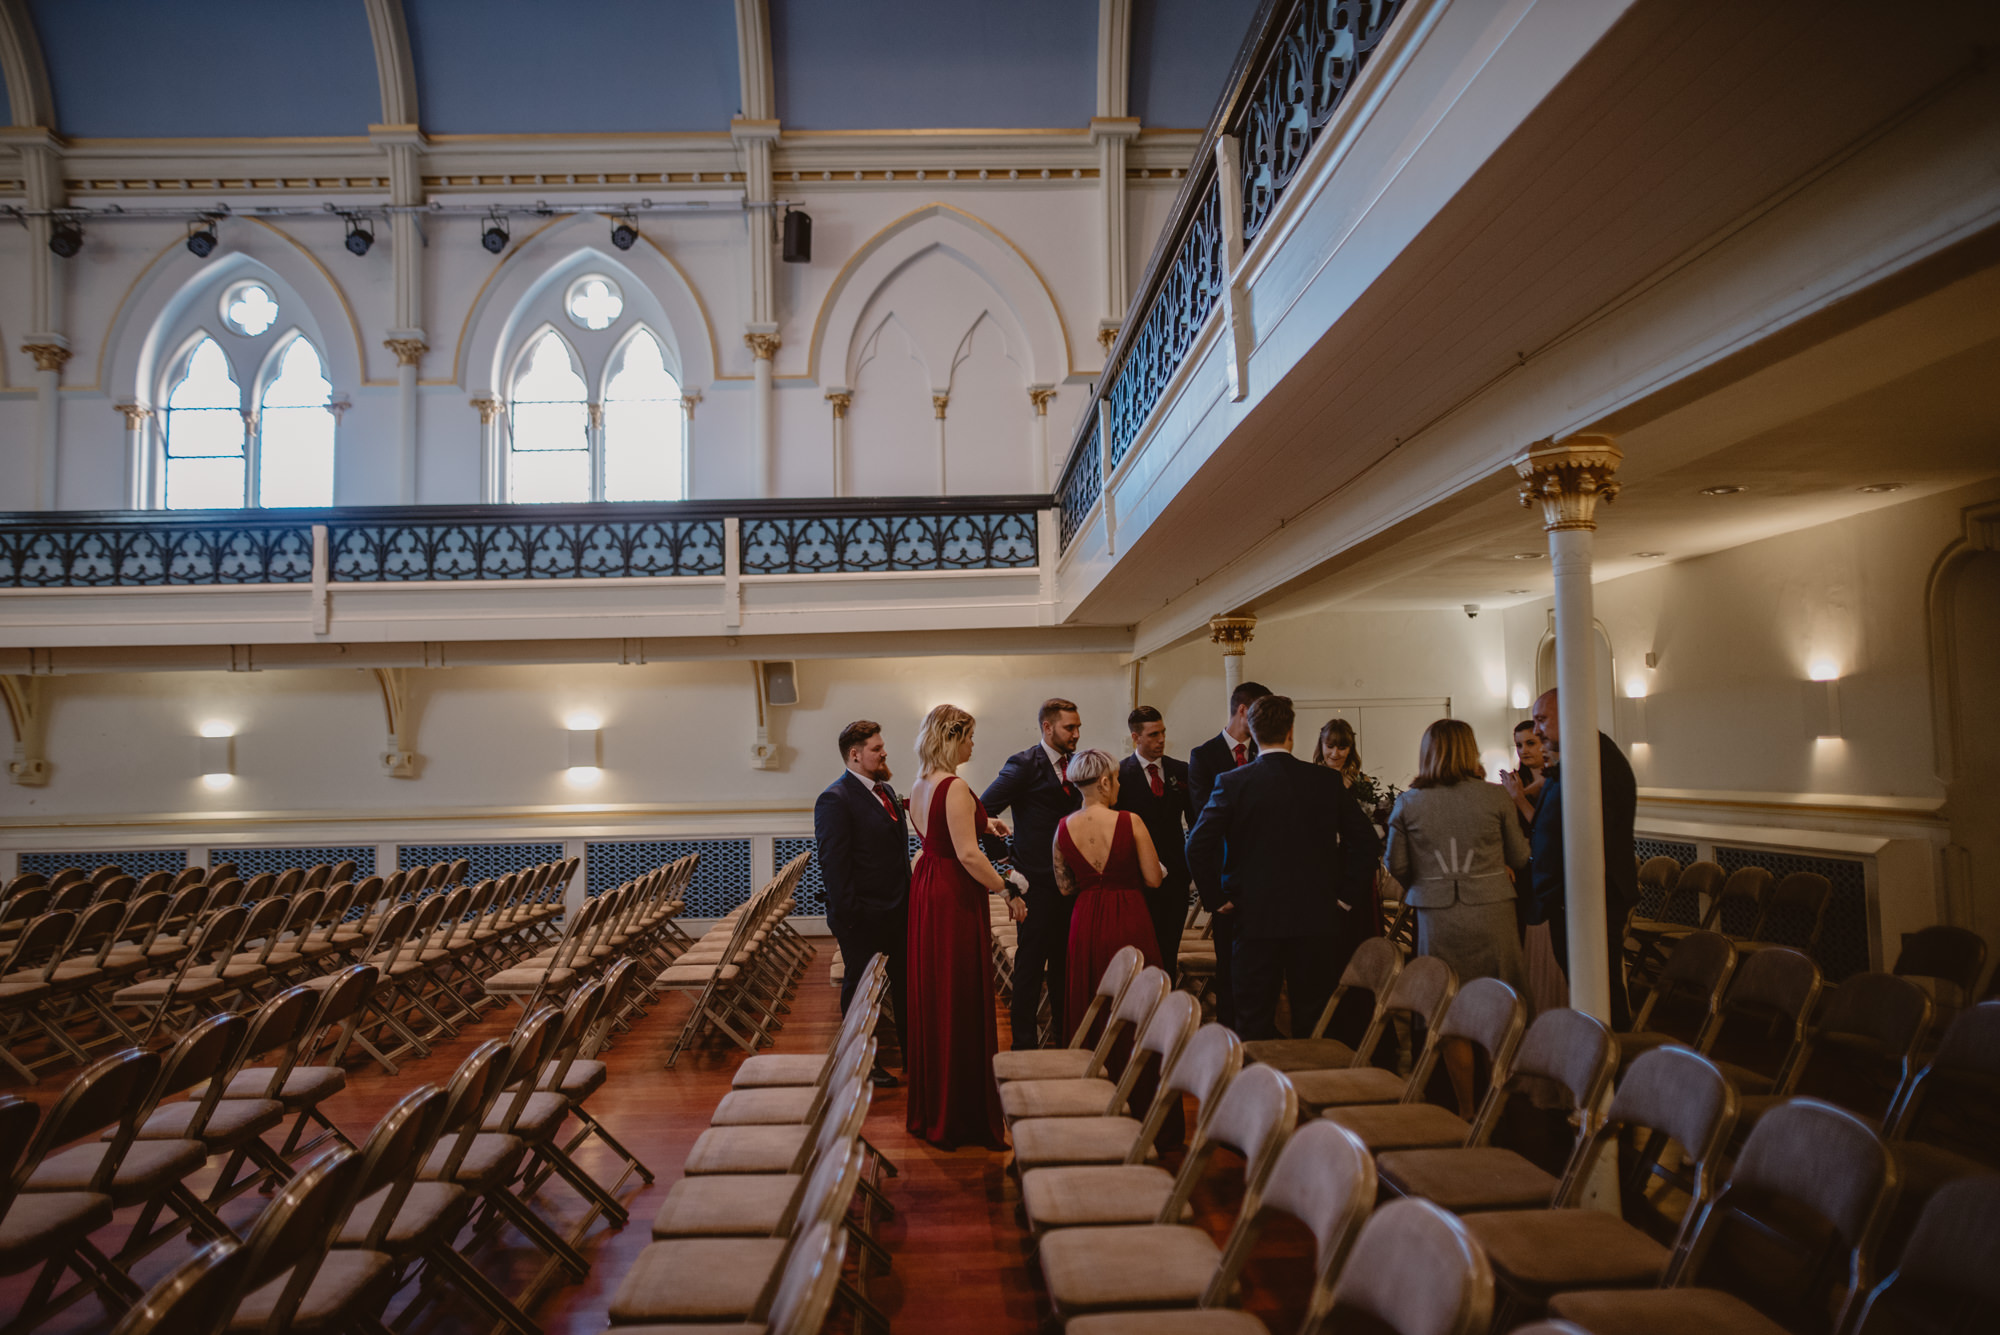 Marissa-and-Ash-Wedding-at-Winchester-Guildhall-and-The-Meade-Hall-Hampshire-Manu-Mendoza-Wedding-Photography-239.jpg